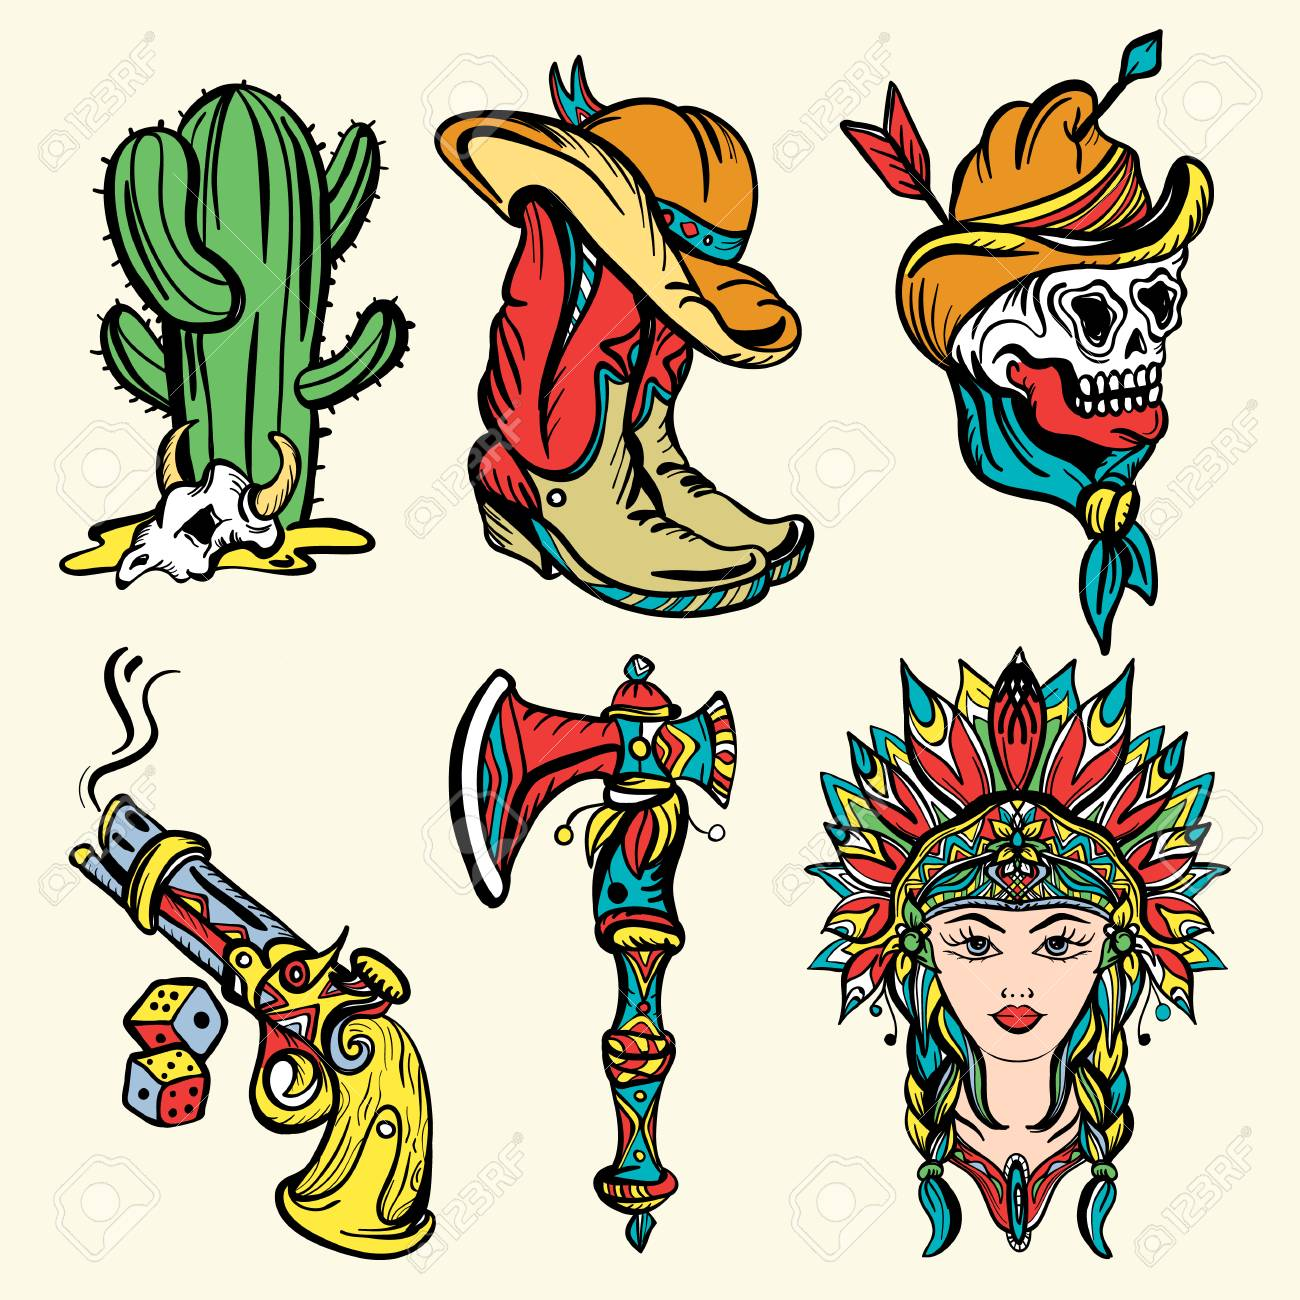 590bc0706887c Wild west old school tattoo vector. Fashionable western set. Cowboy,  cactus, indian